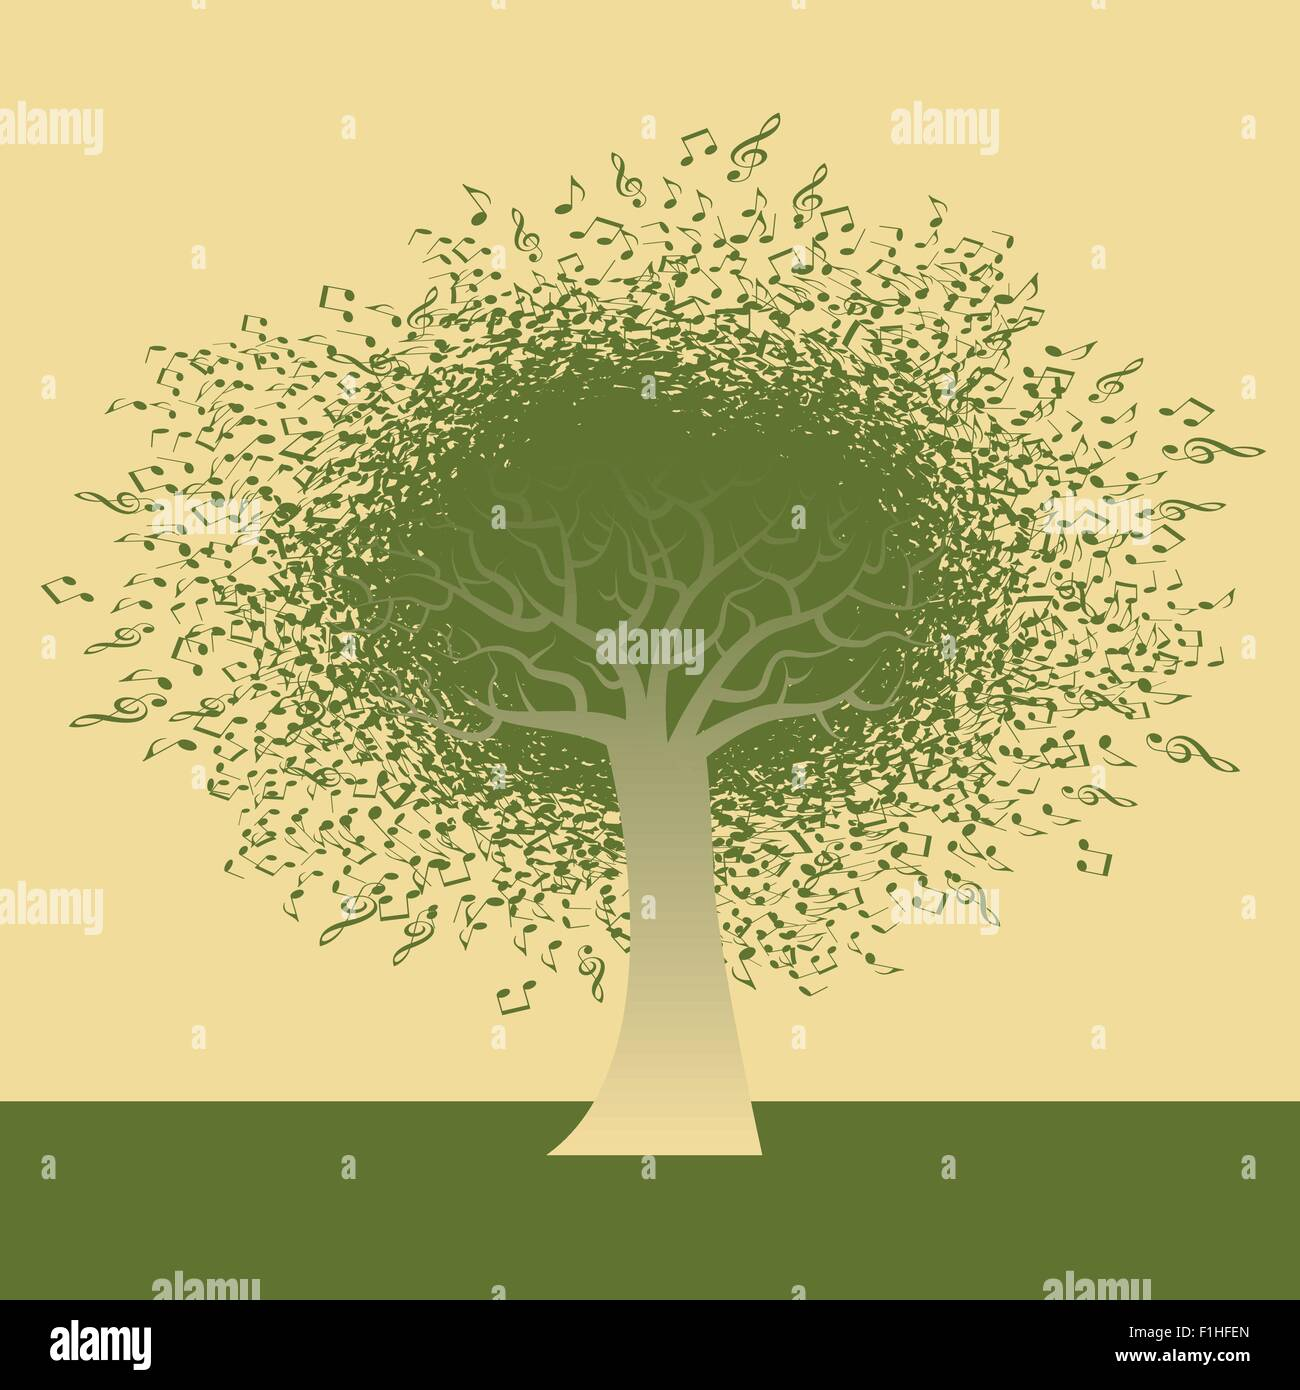 Abstract Musical Note Tree illustration for Web or Print Stock ...